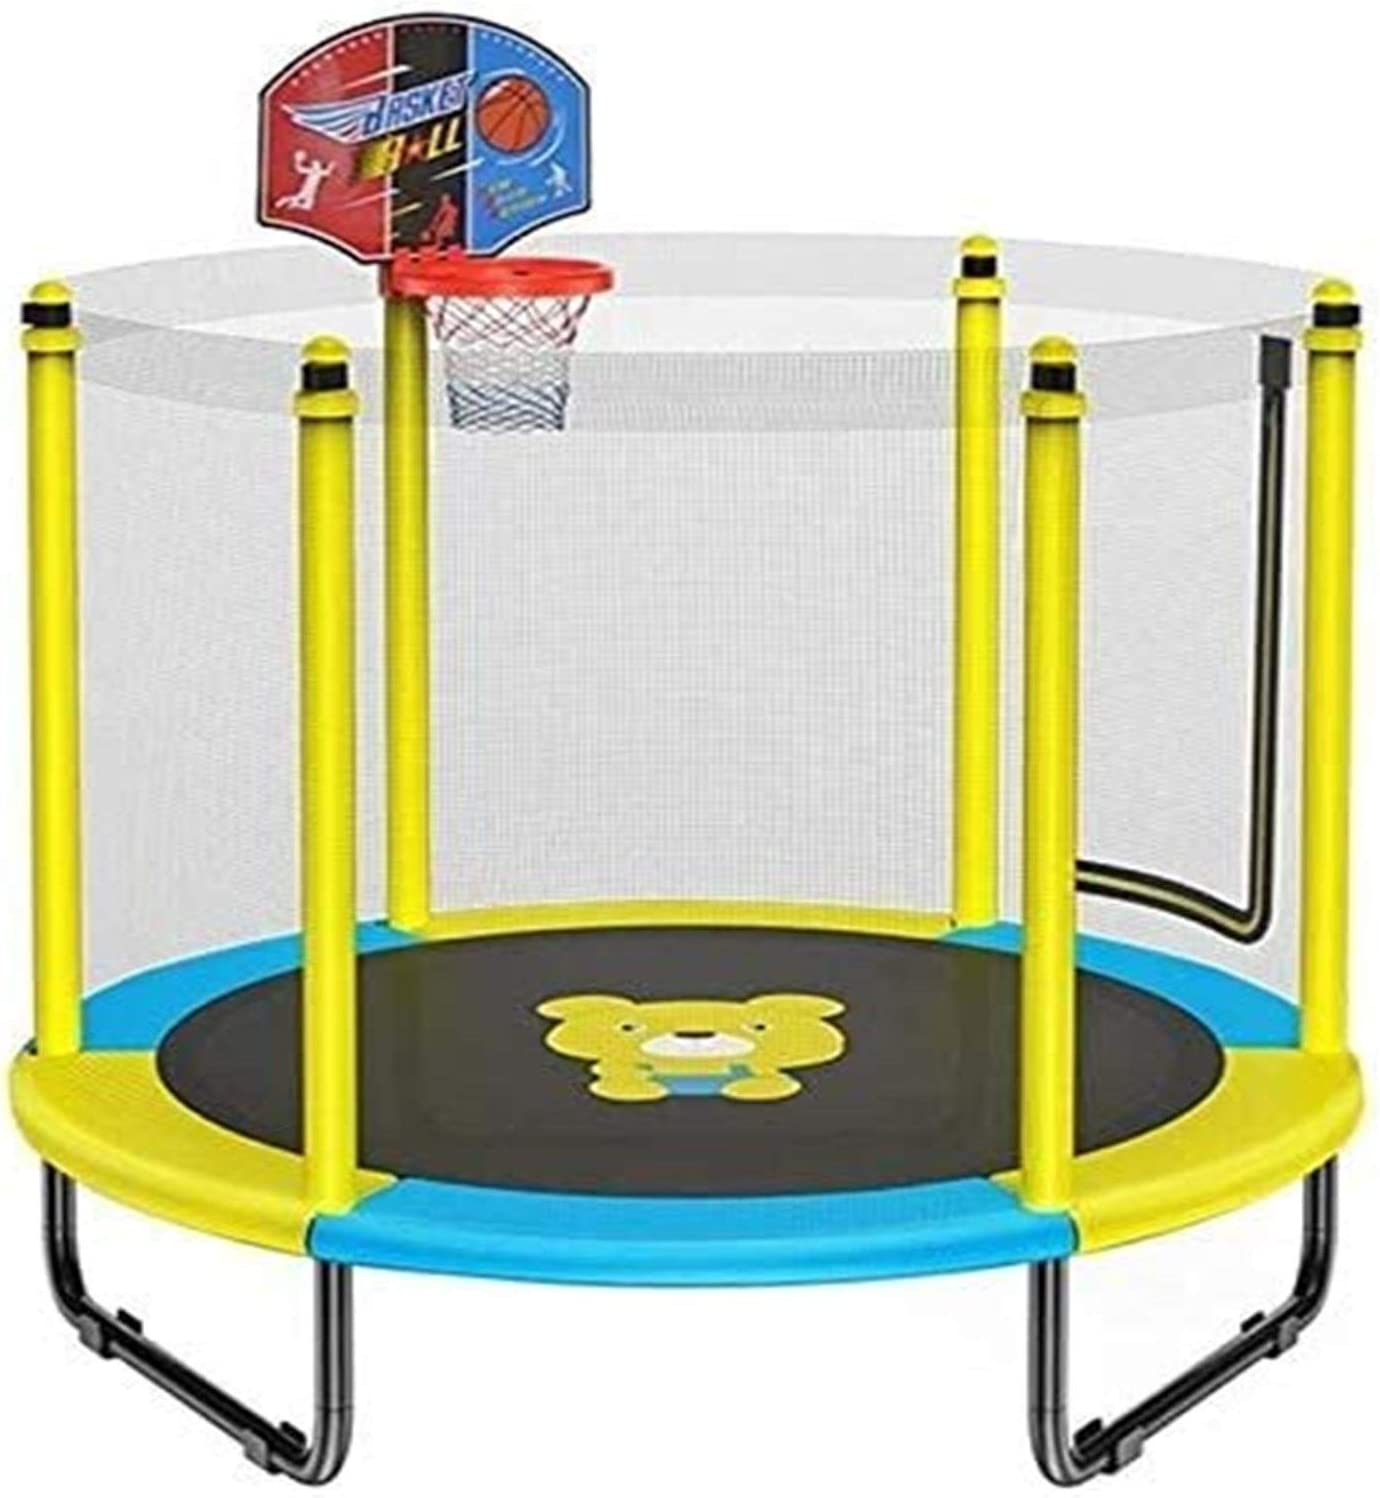 LXYLXY Child Protection Net Indoor Safety and trust Trampoline National uniform free shipping Mini F